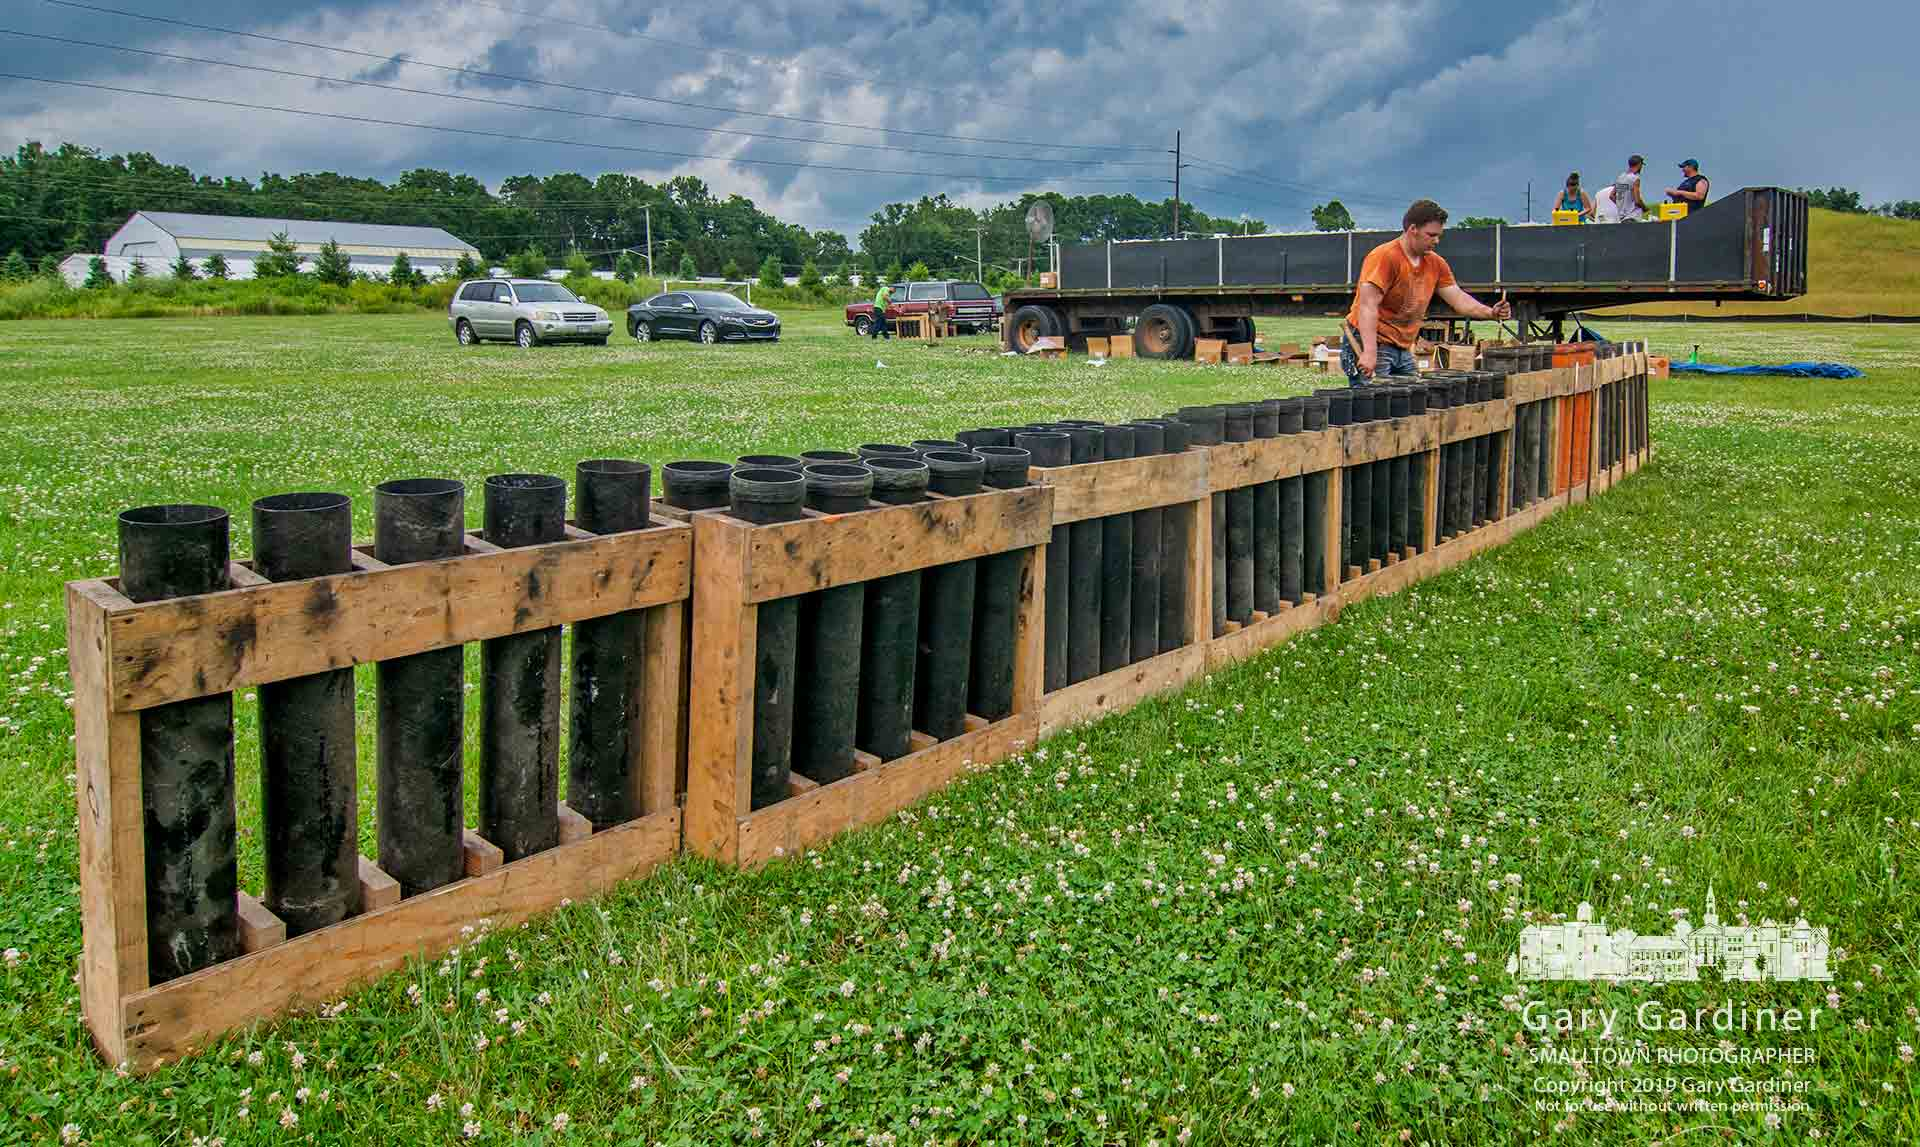 The fireworks crew moves mortar tubes into position as it prepares more than 1,200 projectiles to be fired at the Kuly4th firewqorks show in Westerville. My Final Photo for July 3, 2019.